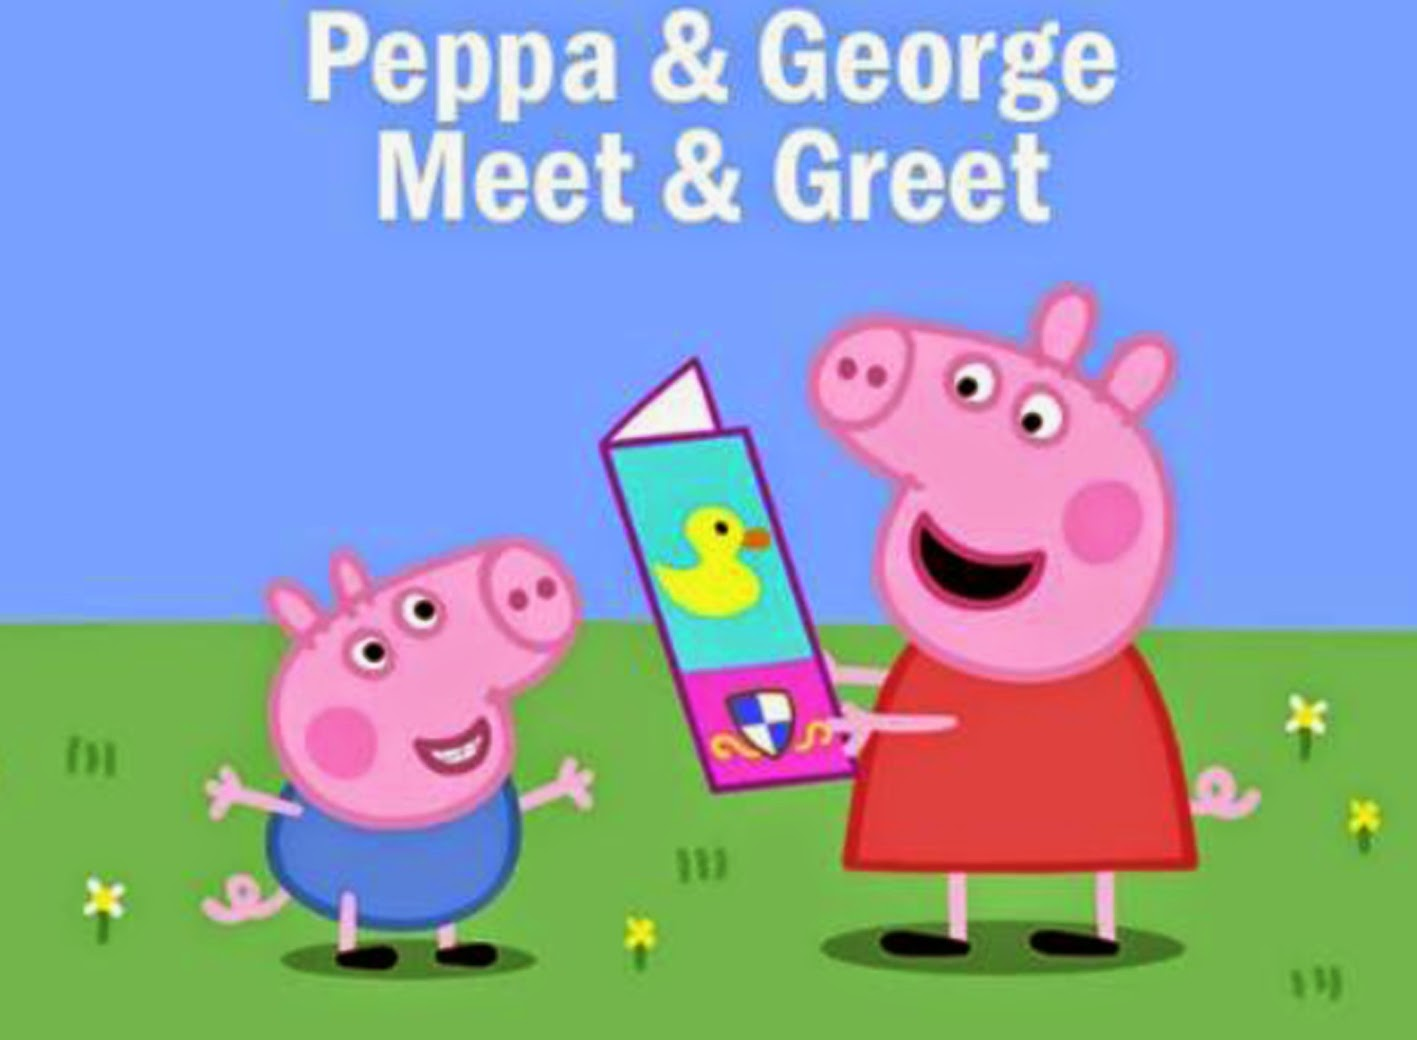 Cartoon Network And Peppa Pig Fans Are In For A Treat This March School Holidays With United Square Shopping Mall Huney Z World